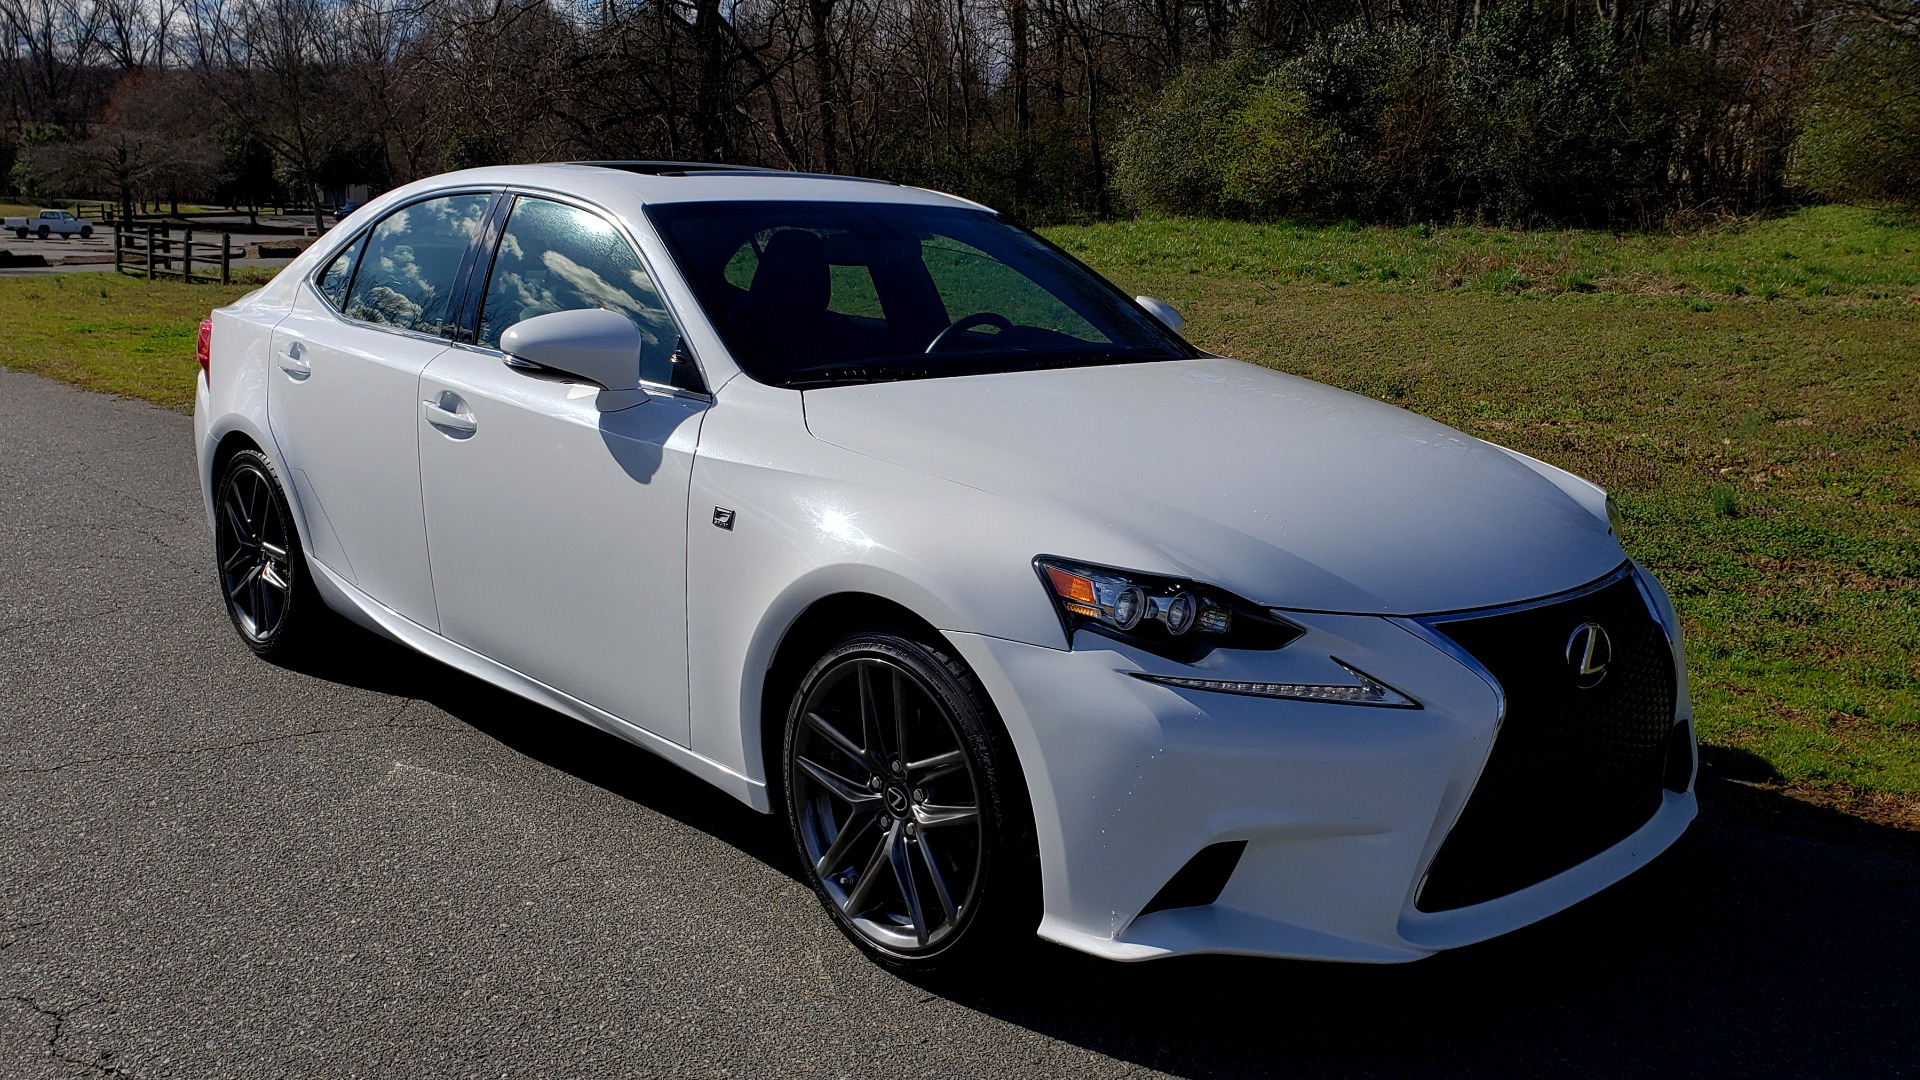 Used 2014 Lexus IS 250 F-SPORT / NAV / SUNROOF / REARVIEW / BSM for sale Sold at Formula Imports in Charlotte NC 28227 4